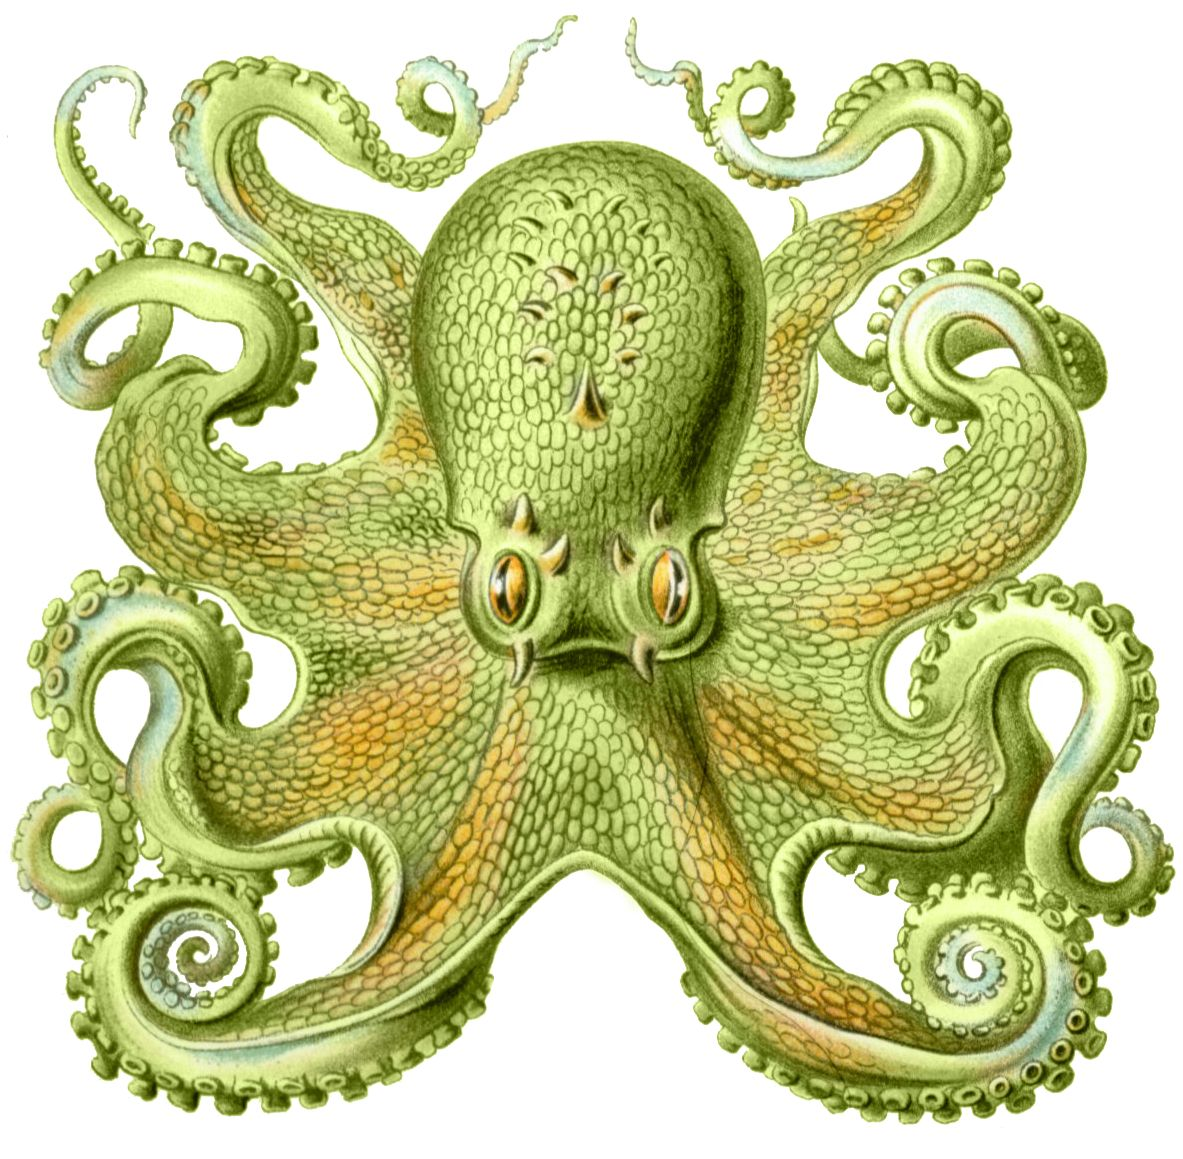 Pin By Zaza On Cephalopods Octopus Sea Creatures Squid Drawing